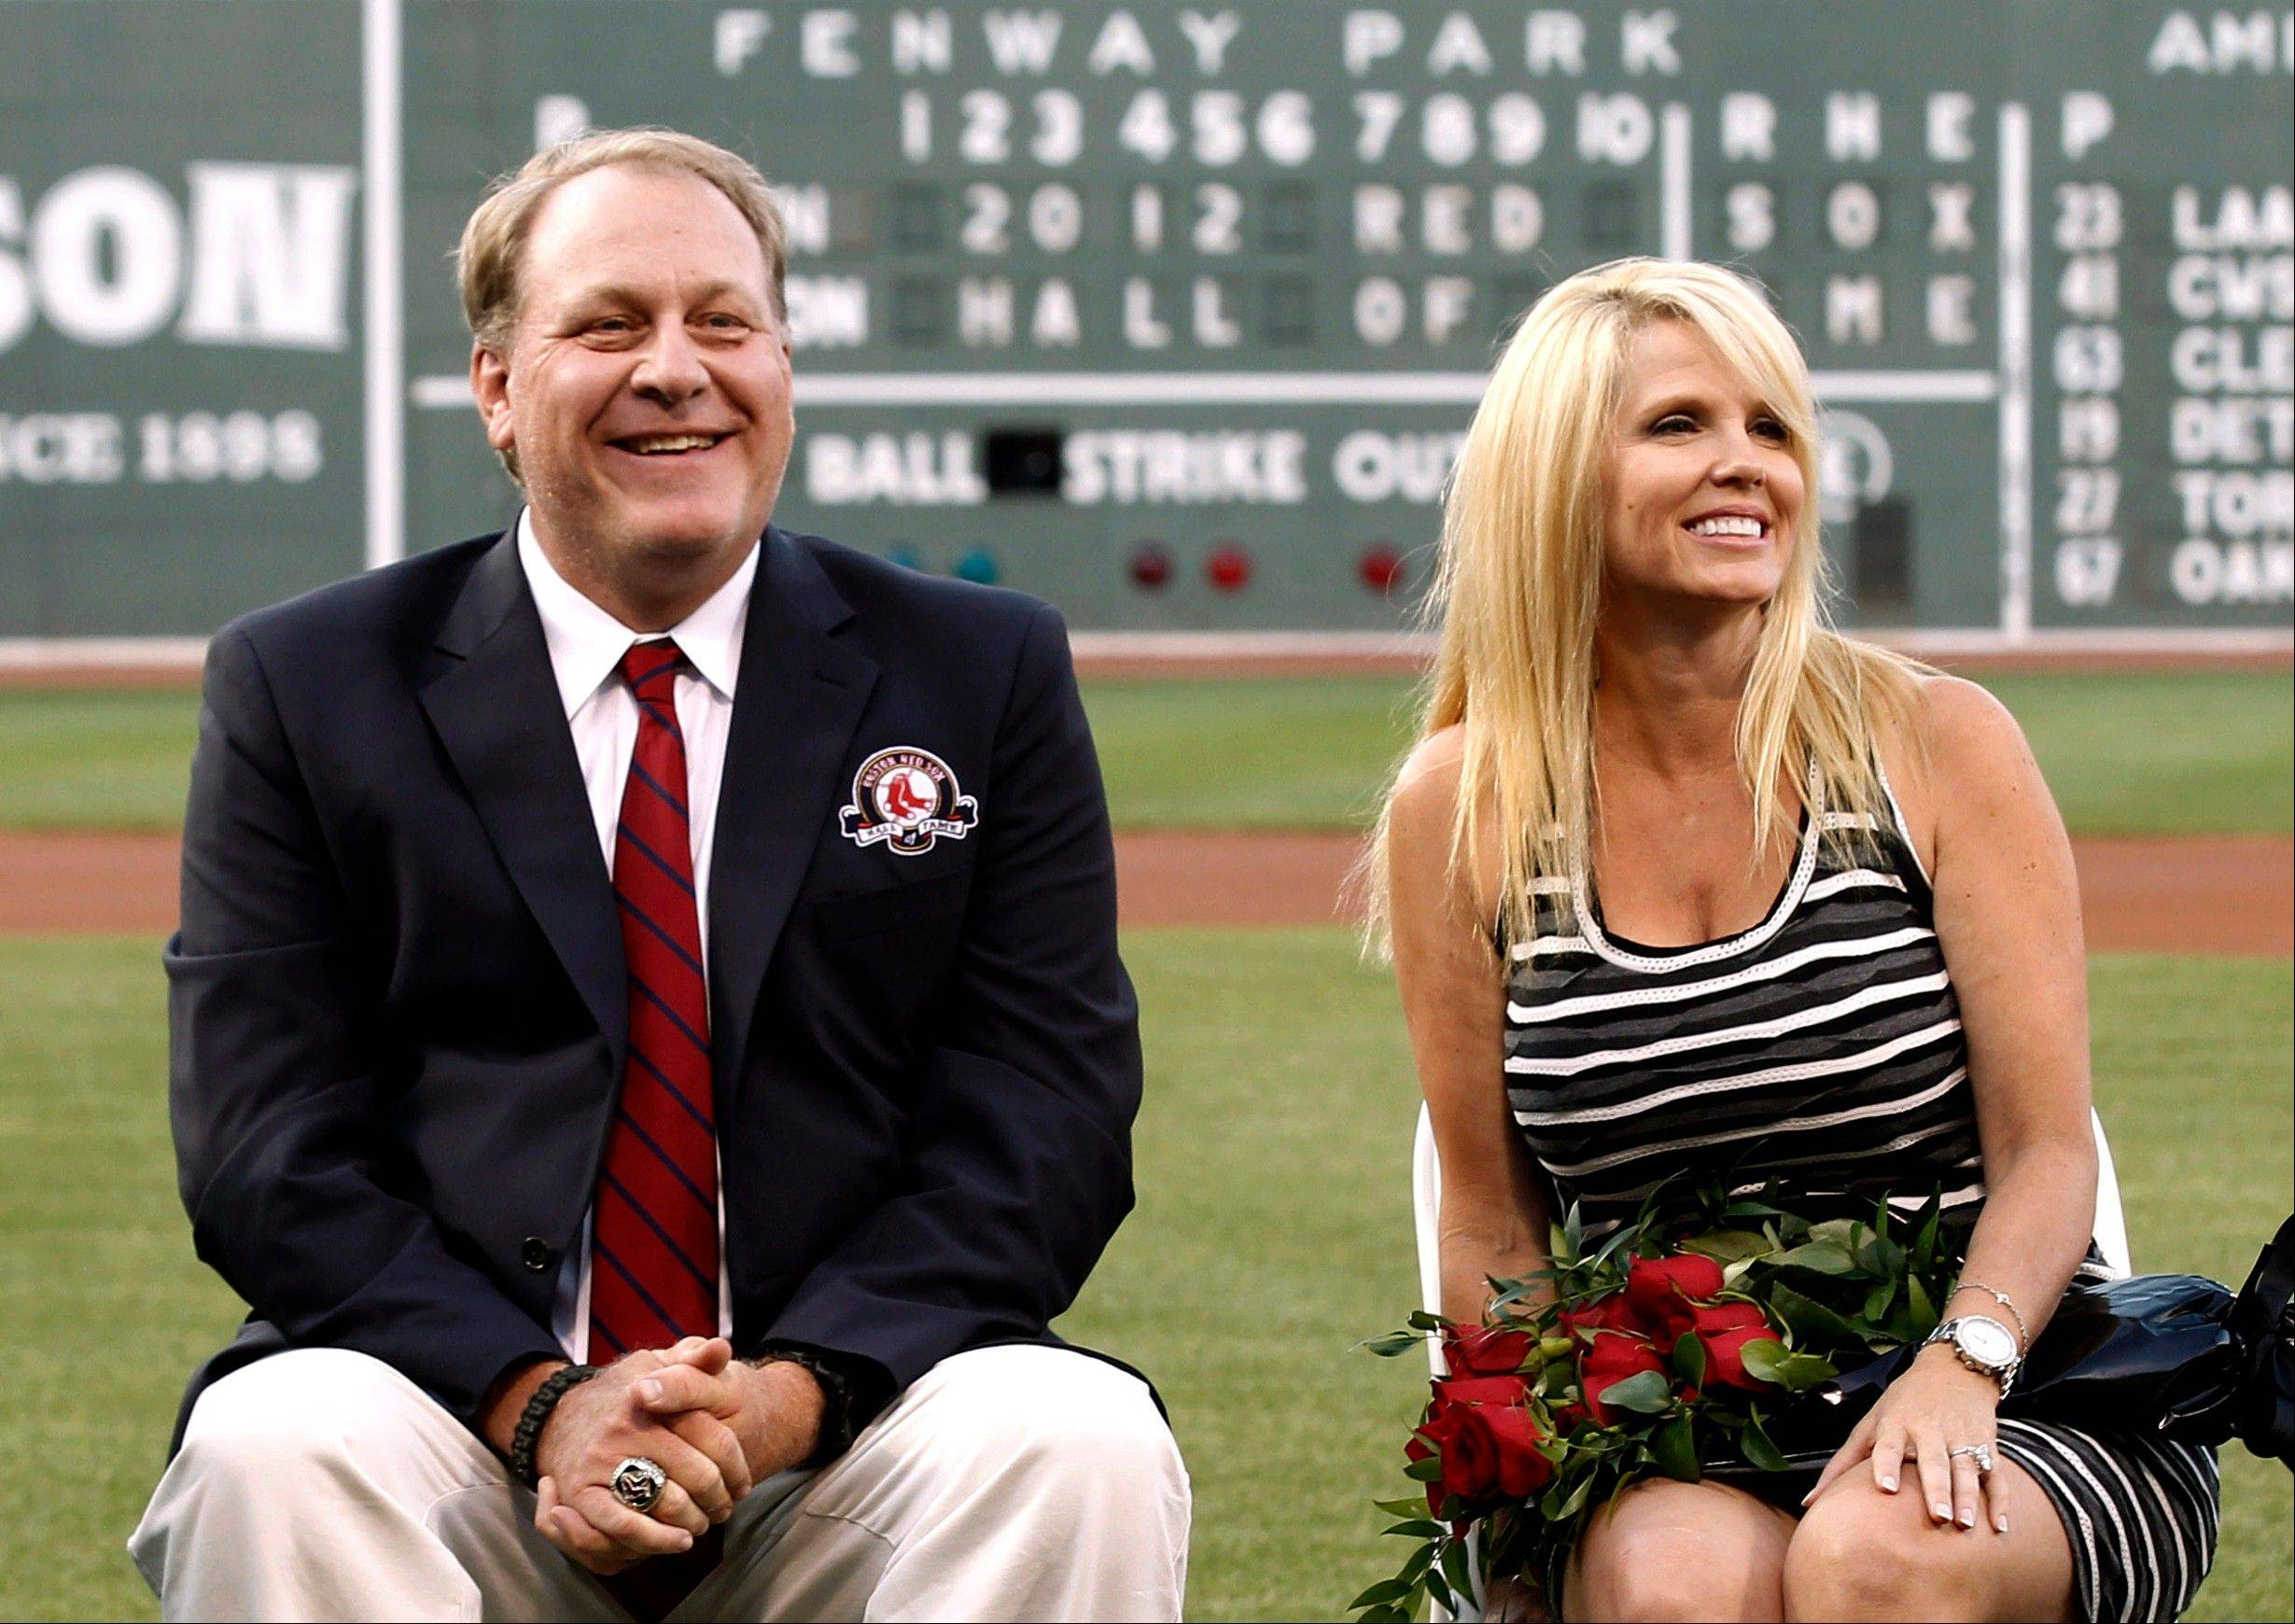 Former Boston Red Sox pitcher Curt Schilling, sitting with his wife, Shonda, was introduced as a new member of the Red Sox Hall of Fame last fall. The Schilling home, which he bought from former Patriots quarterback Drew Bledsoe for $4.5 million, is for sale for $3 million. It has a heated eight-car garage, a batting/pitching cage, putting green and wine room.